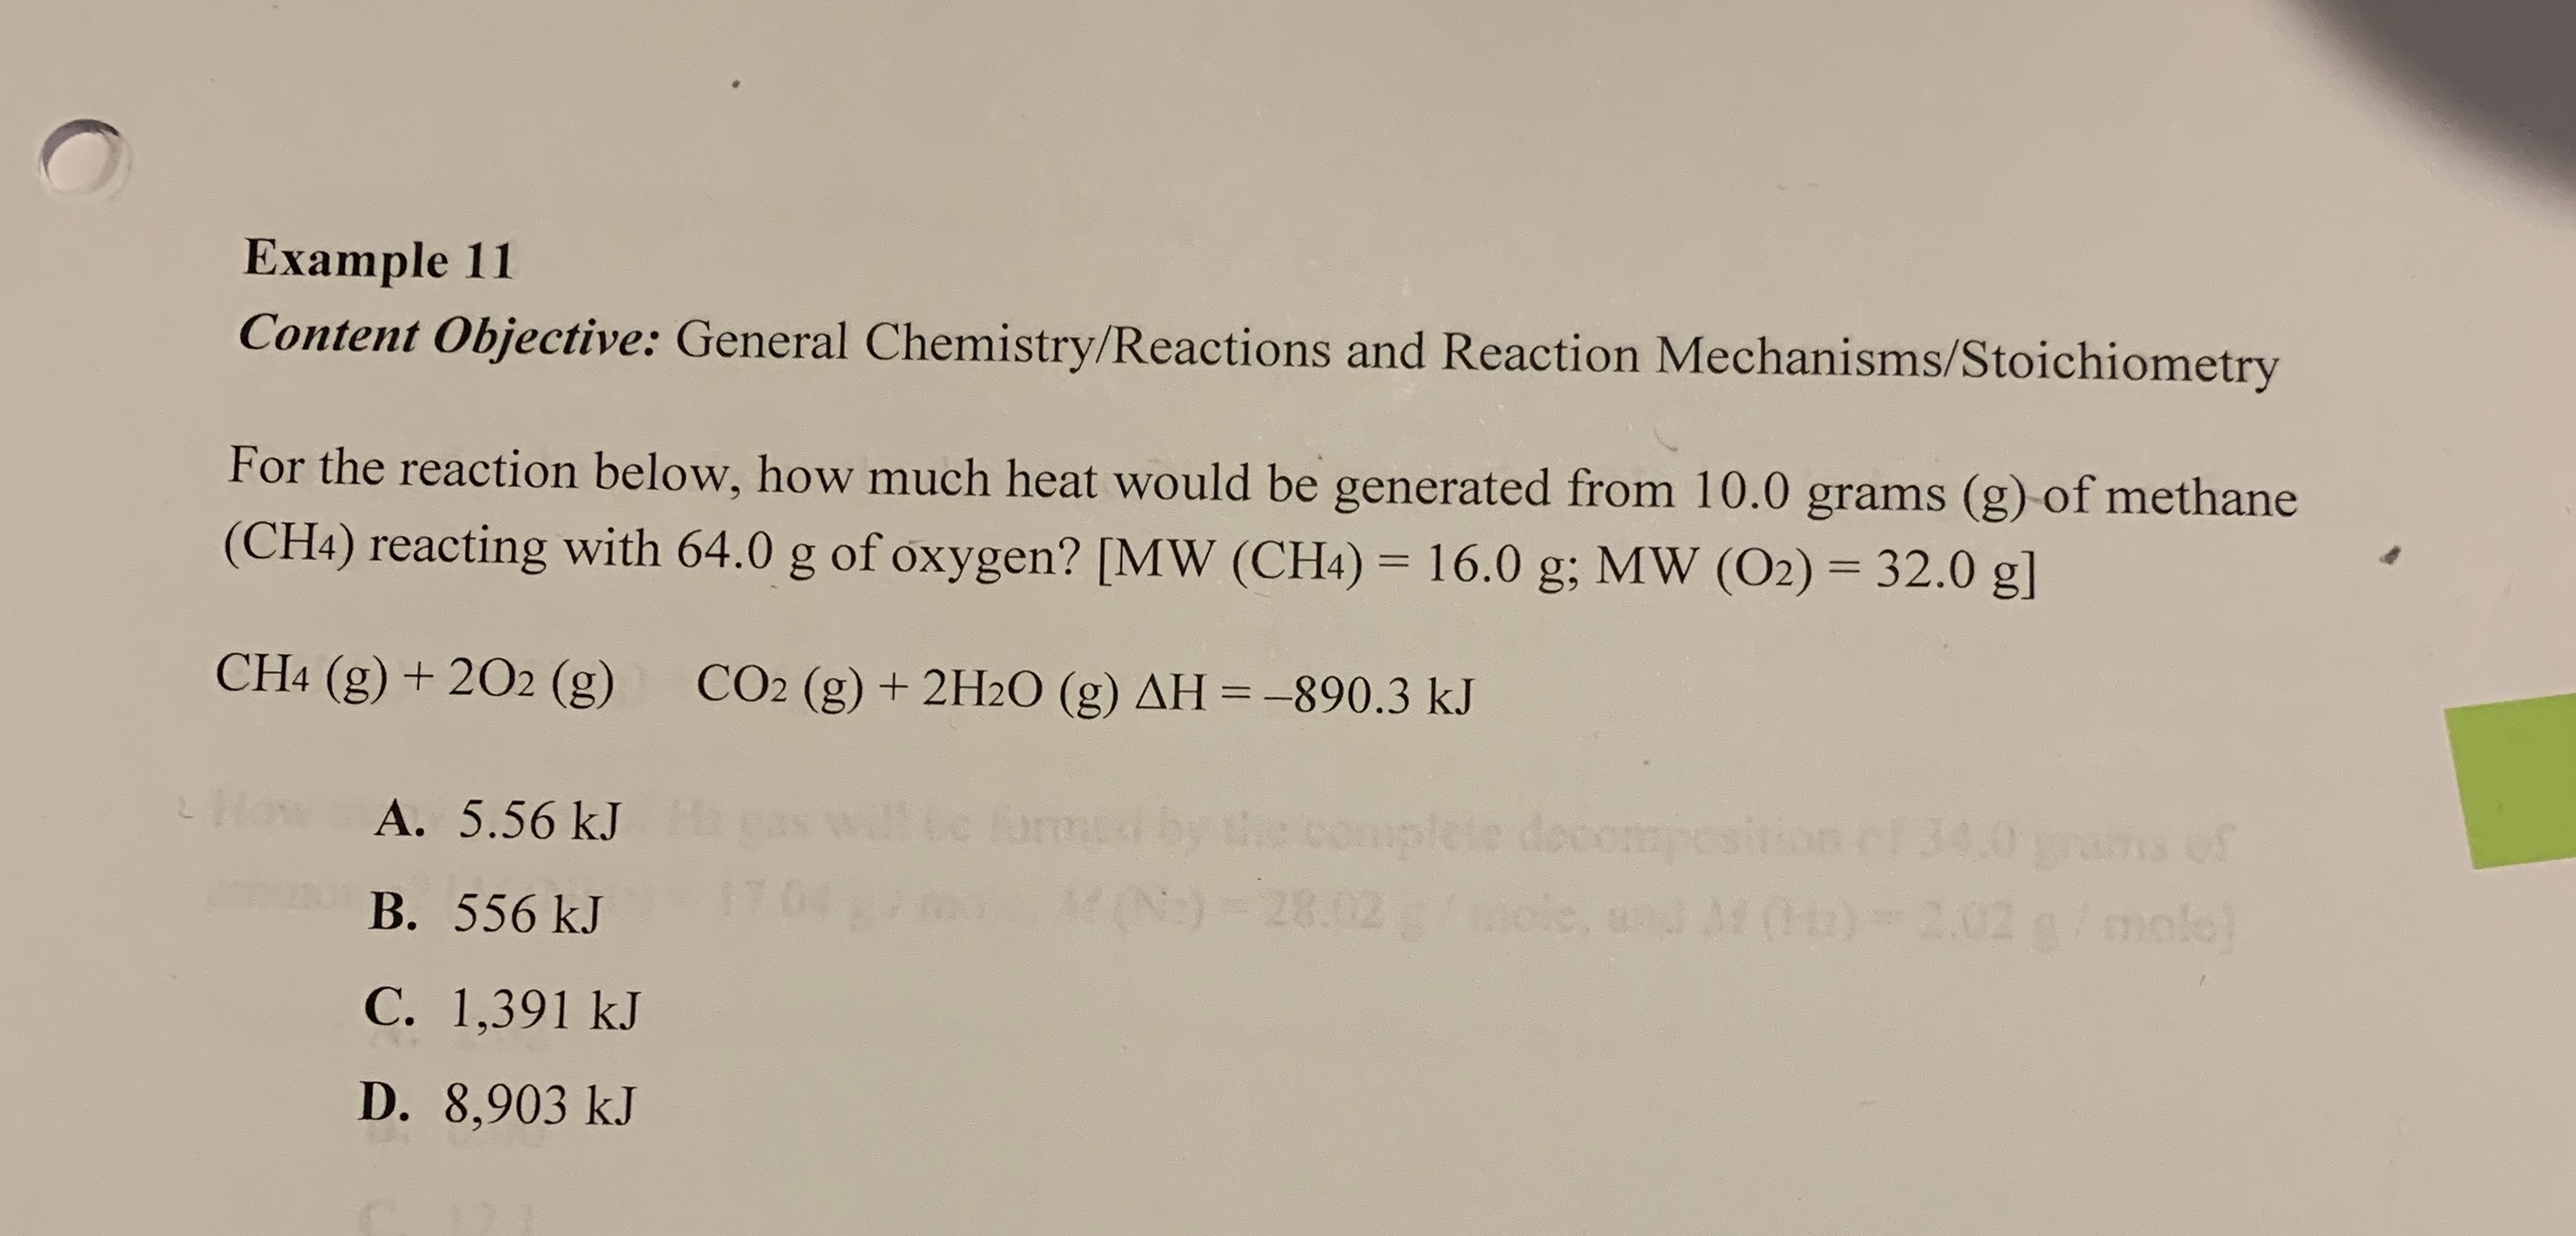 Example 11 Content Objective: General Chemistry/Reactions and Reaction Mechanisms/Stoichiometry For the reaction below, how much heat would be generated from 10.0 grams (g) of methane 32.0 g] (CH4) reacting with 64.0 g of oxygen? [MW (CH4) 16.0 g; MW (O2) CH4 (g) +202 (g) CO2 (g)+2H20 (g) AH =-890.3 kJ complete dsirion ef 34.0 ans of eoompe 120)-28.02 bole, and M0)-2.02 a/ mol 02 100016. orme How A. 5.56 kJ В. 556 kJ С. 1,391 kJ D. 8,903 kJ